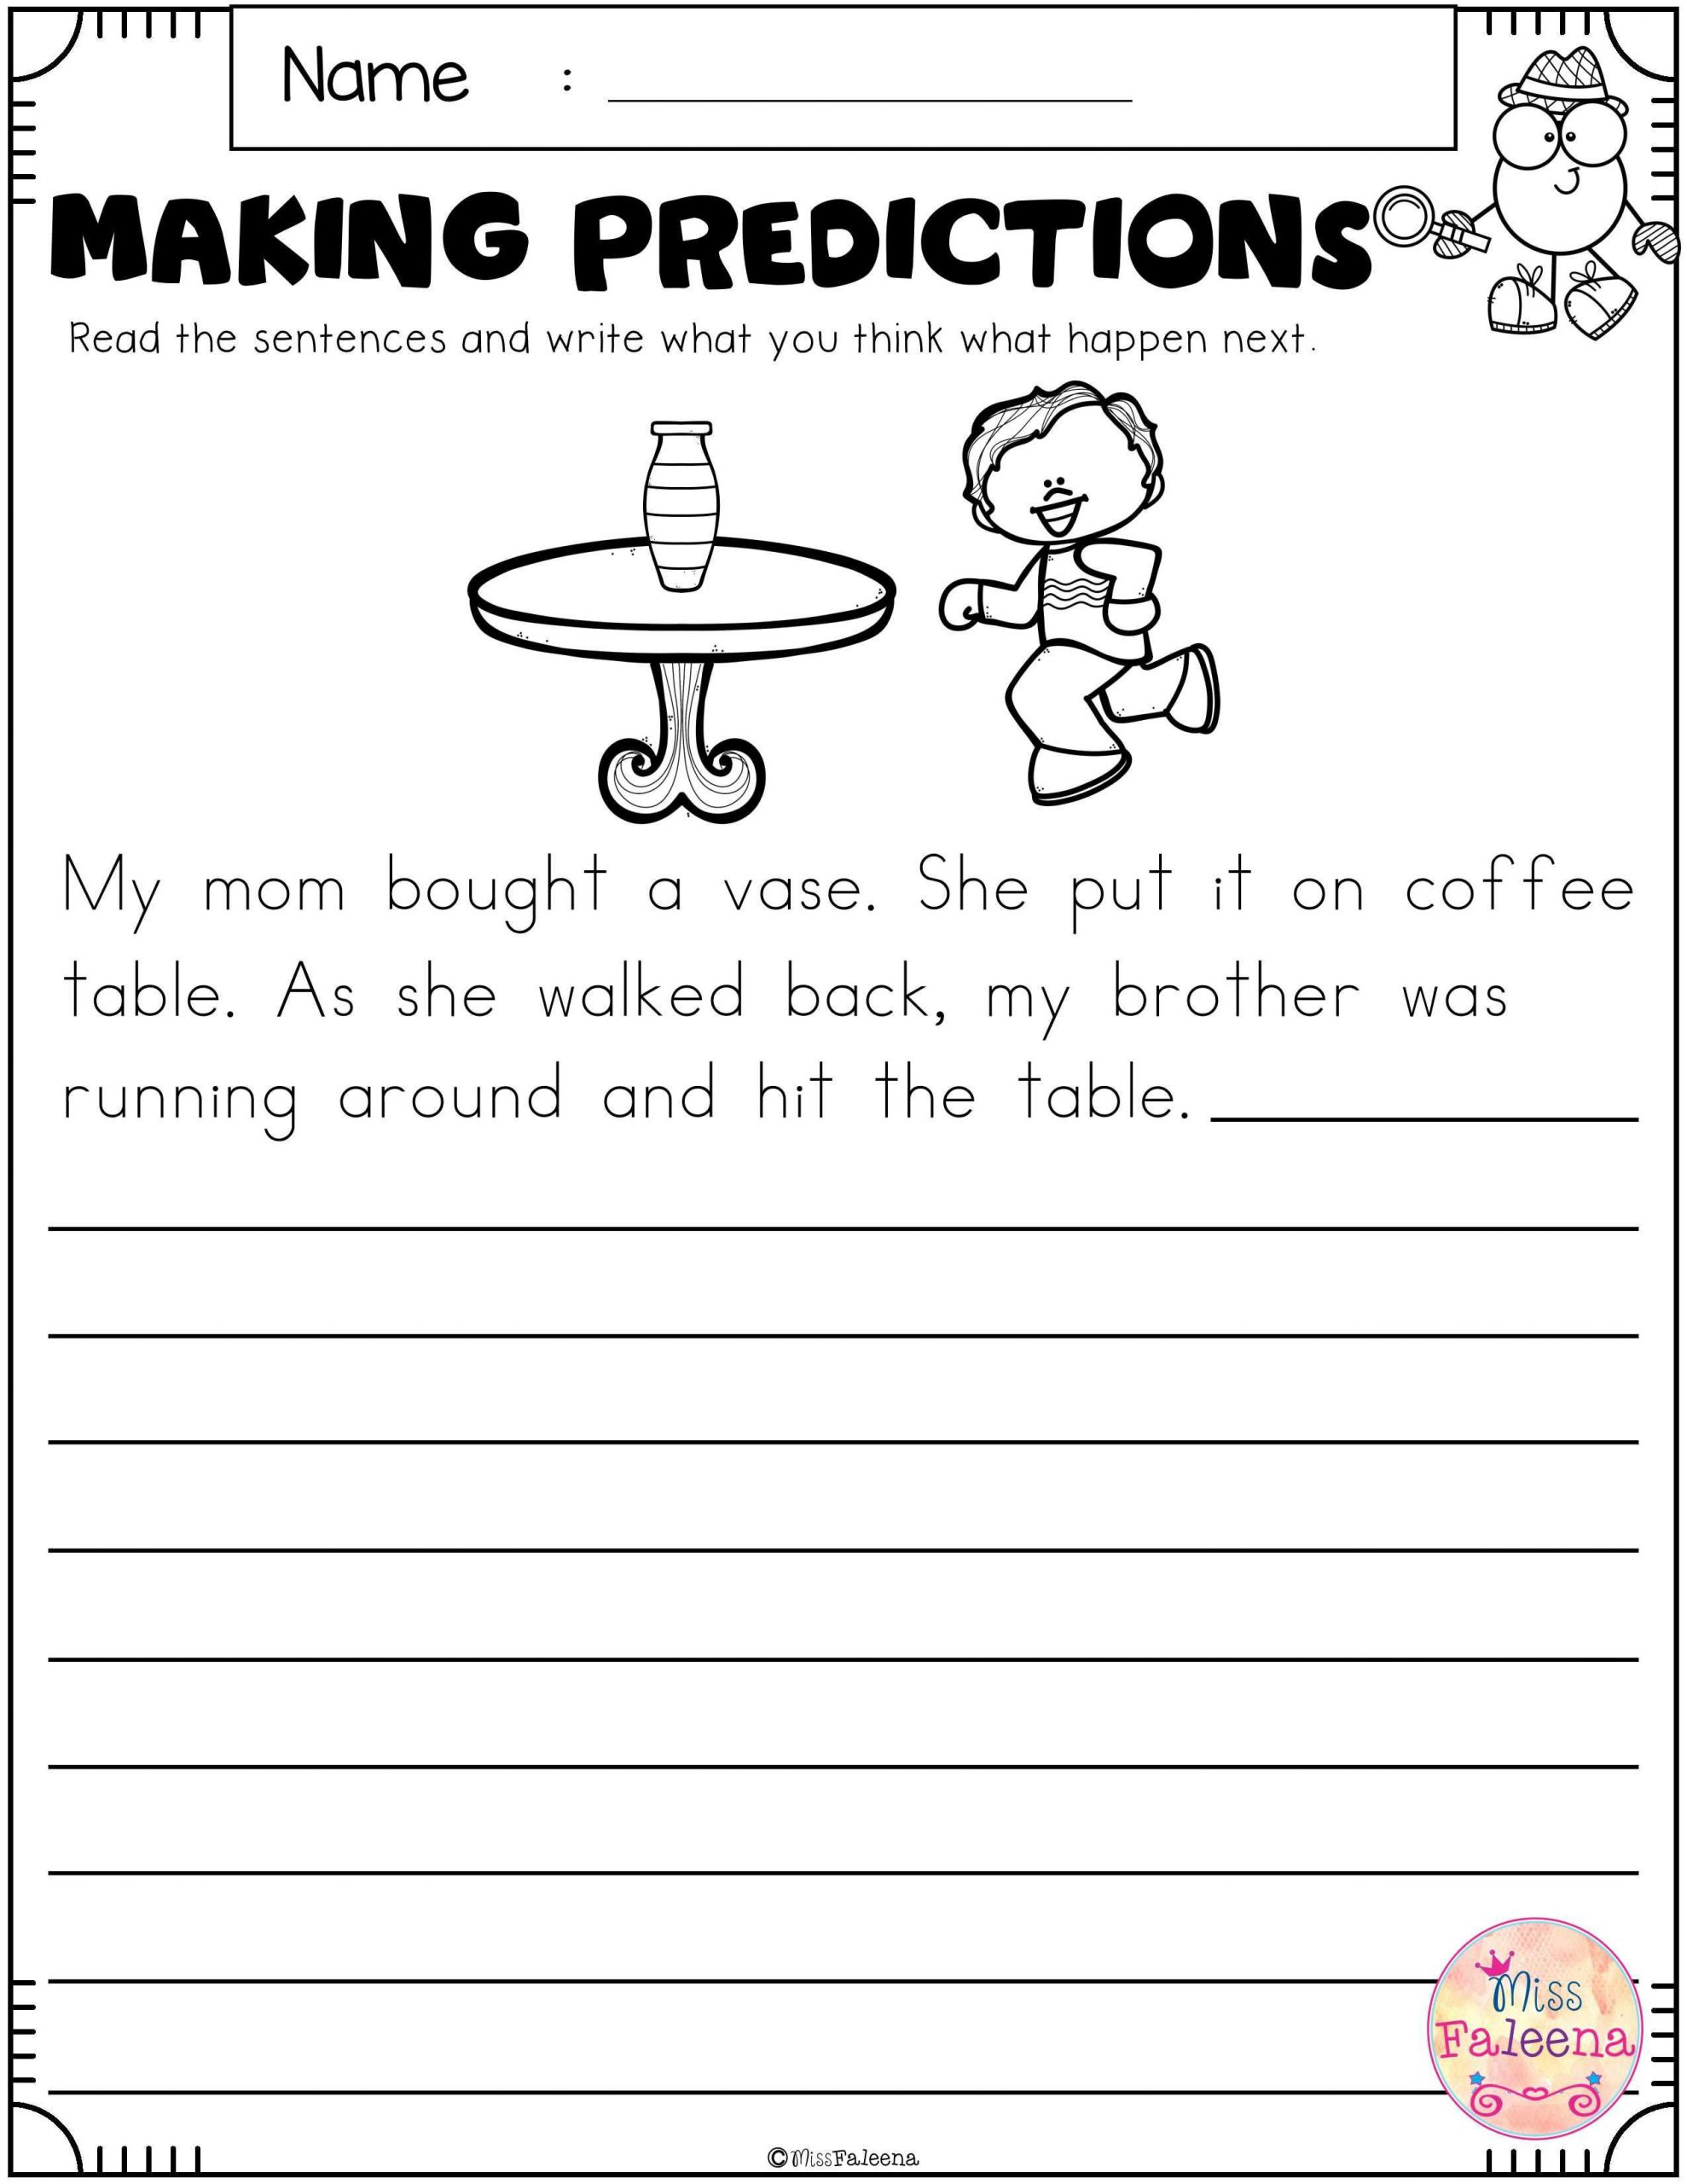 Making Predictions Worksheets 3rd Grade Free Making Predictions with Images